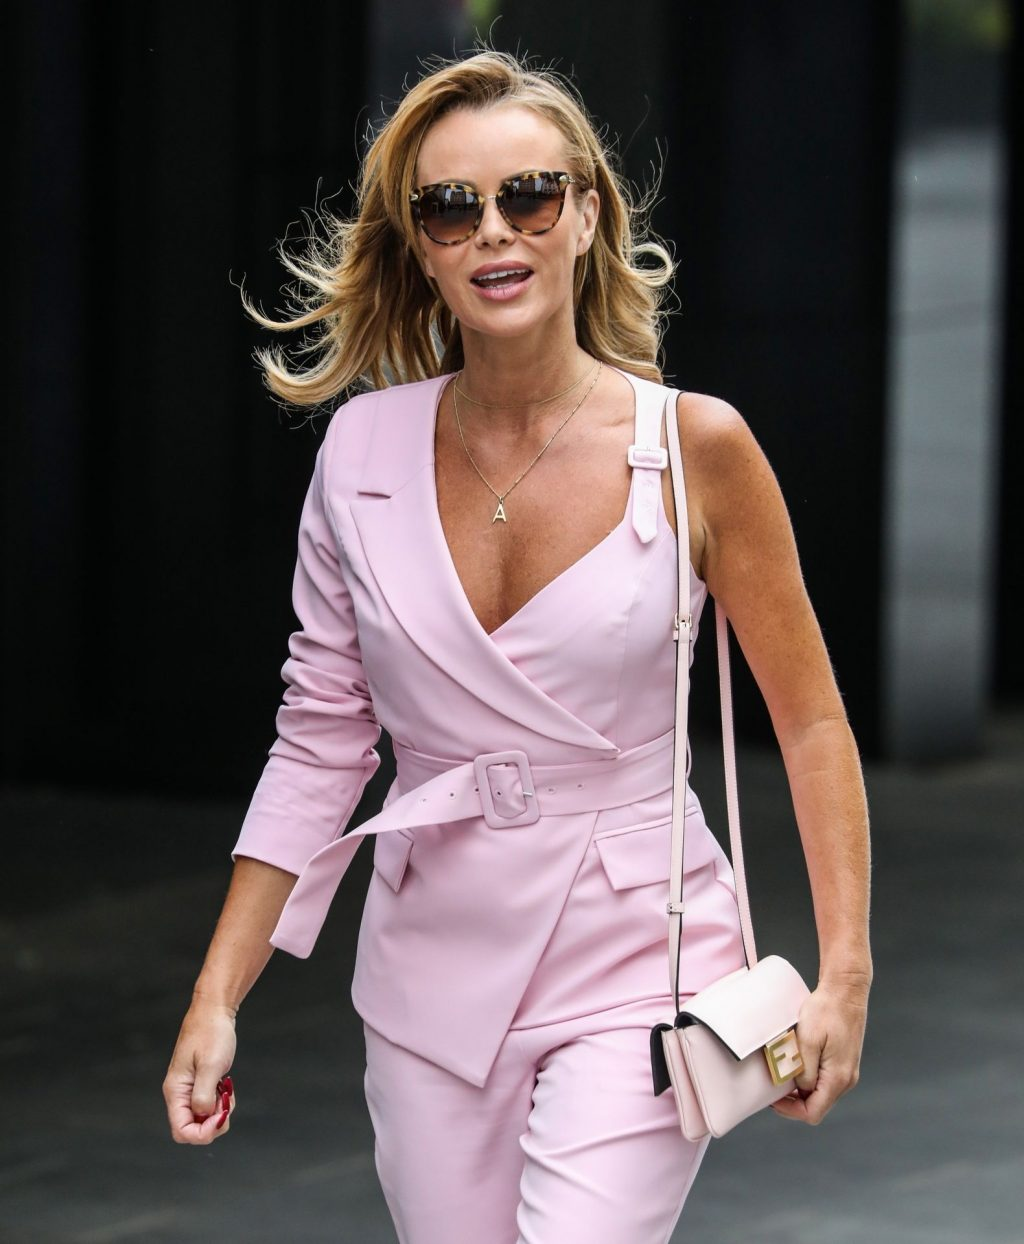 Amanda Holden Looks Hot in All Pink in London (64 Photos)